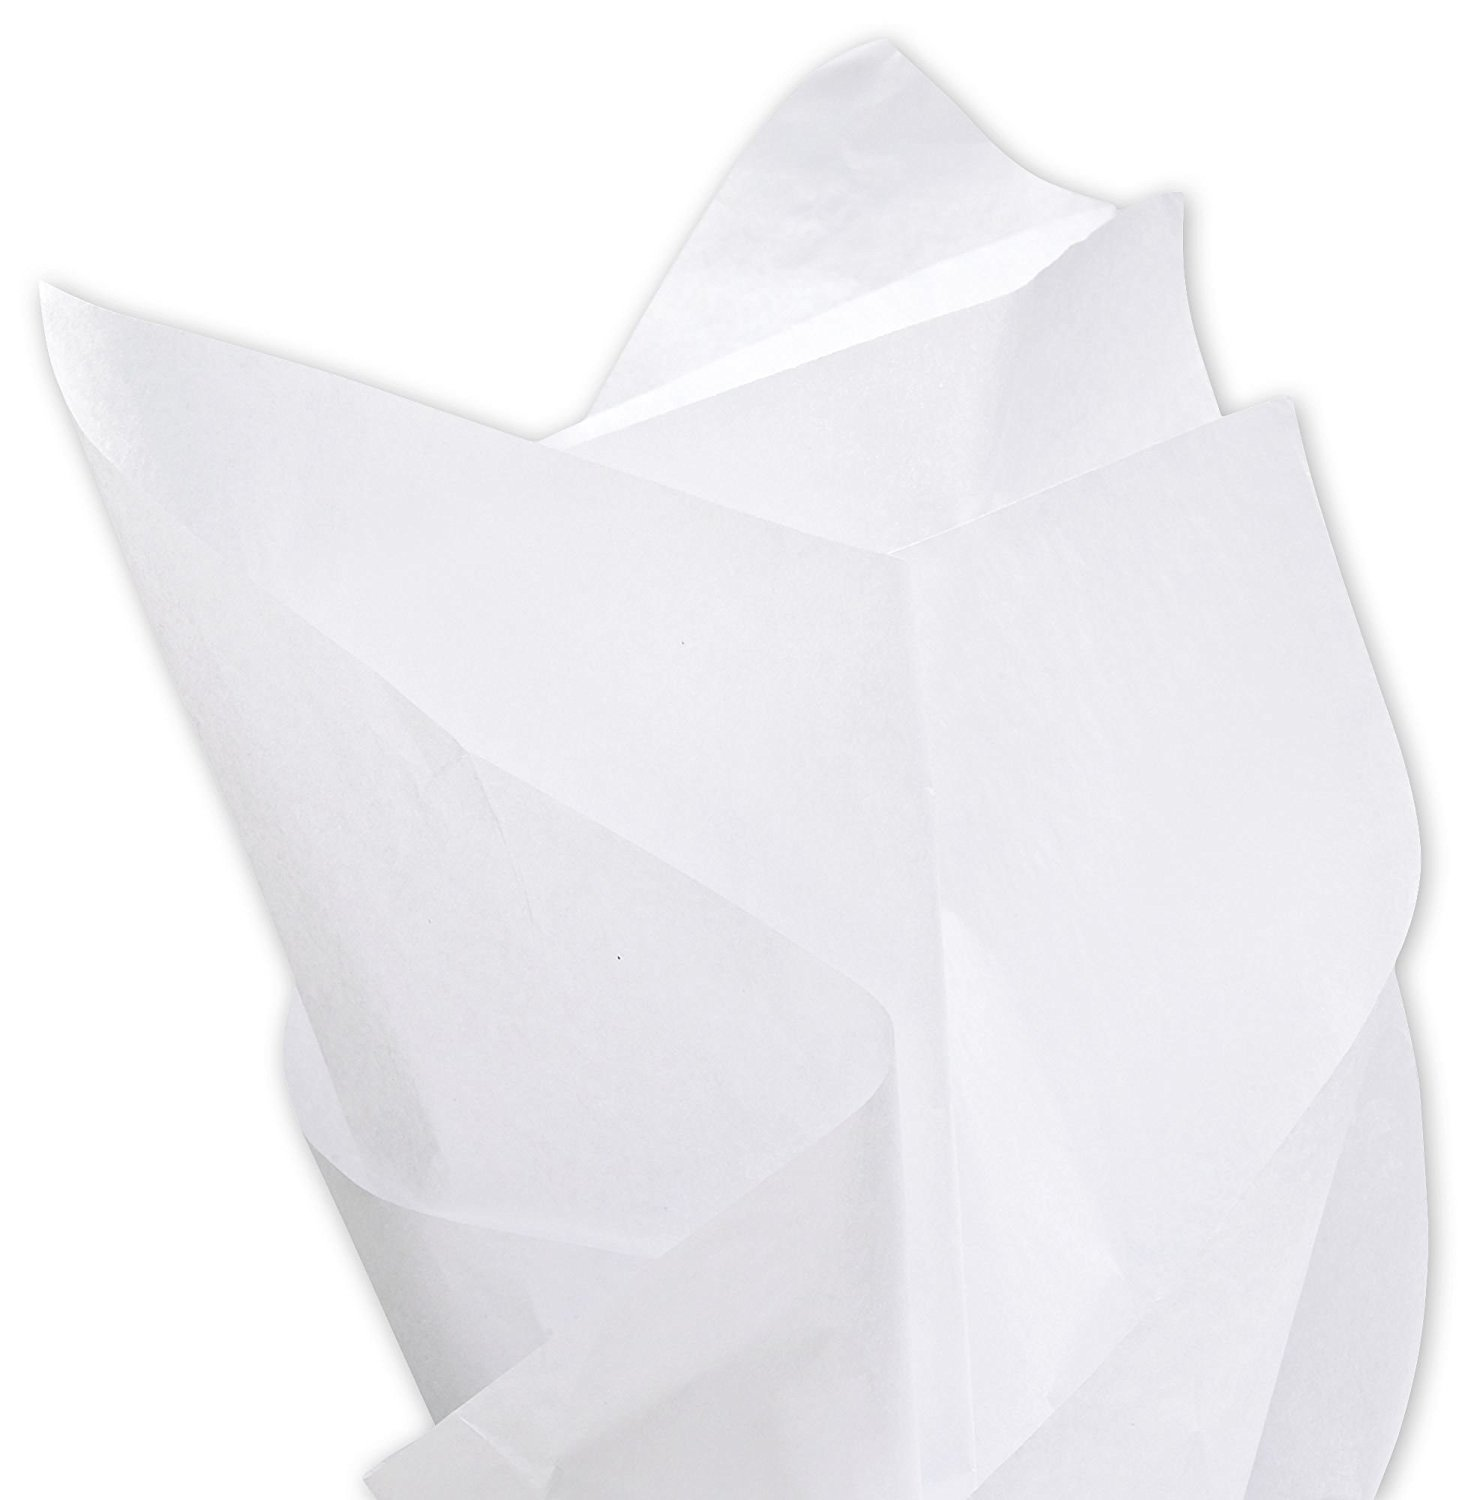 "Solid Tissue Paper - Solid Tissue Paper, White, 15 x 20"" (960 Sheets) - BOWS-11-1520-9M"